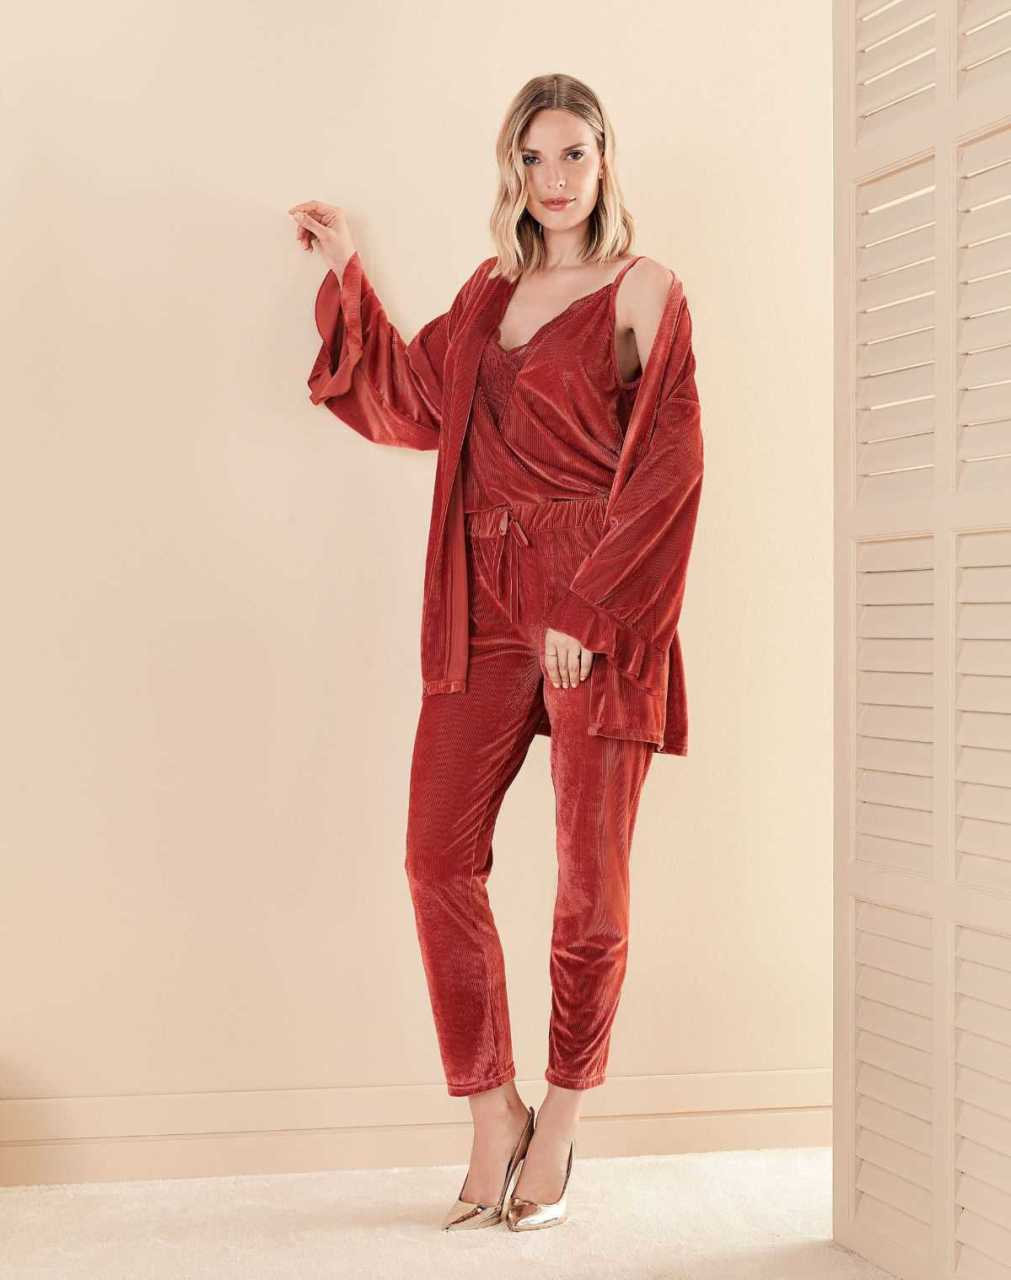 Women's Pajamas Set SIX Piece %100 Polyester Dressing Gown and Nightgown Free Shipping from Turkey